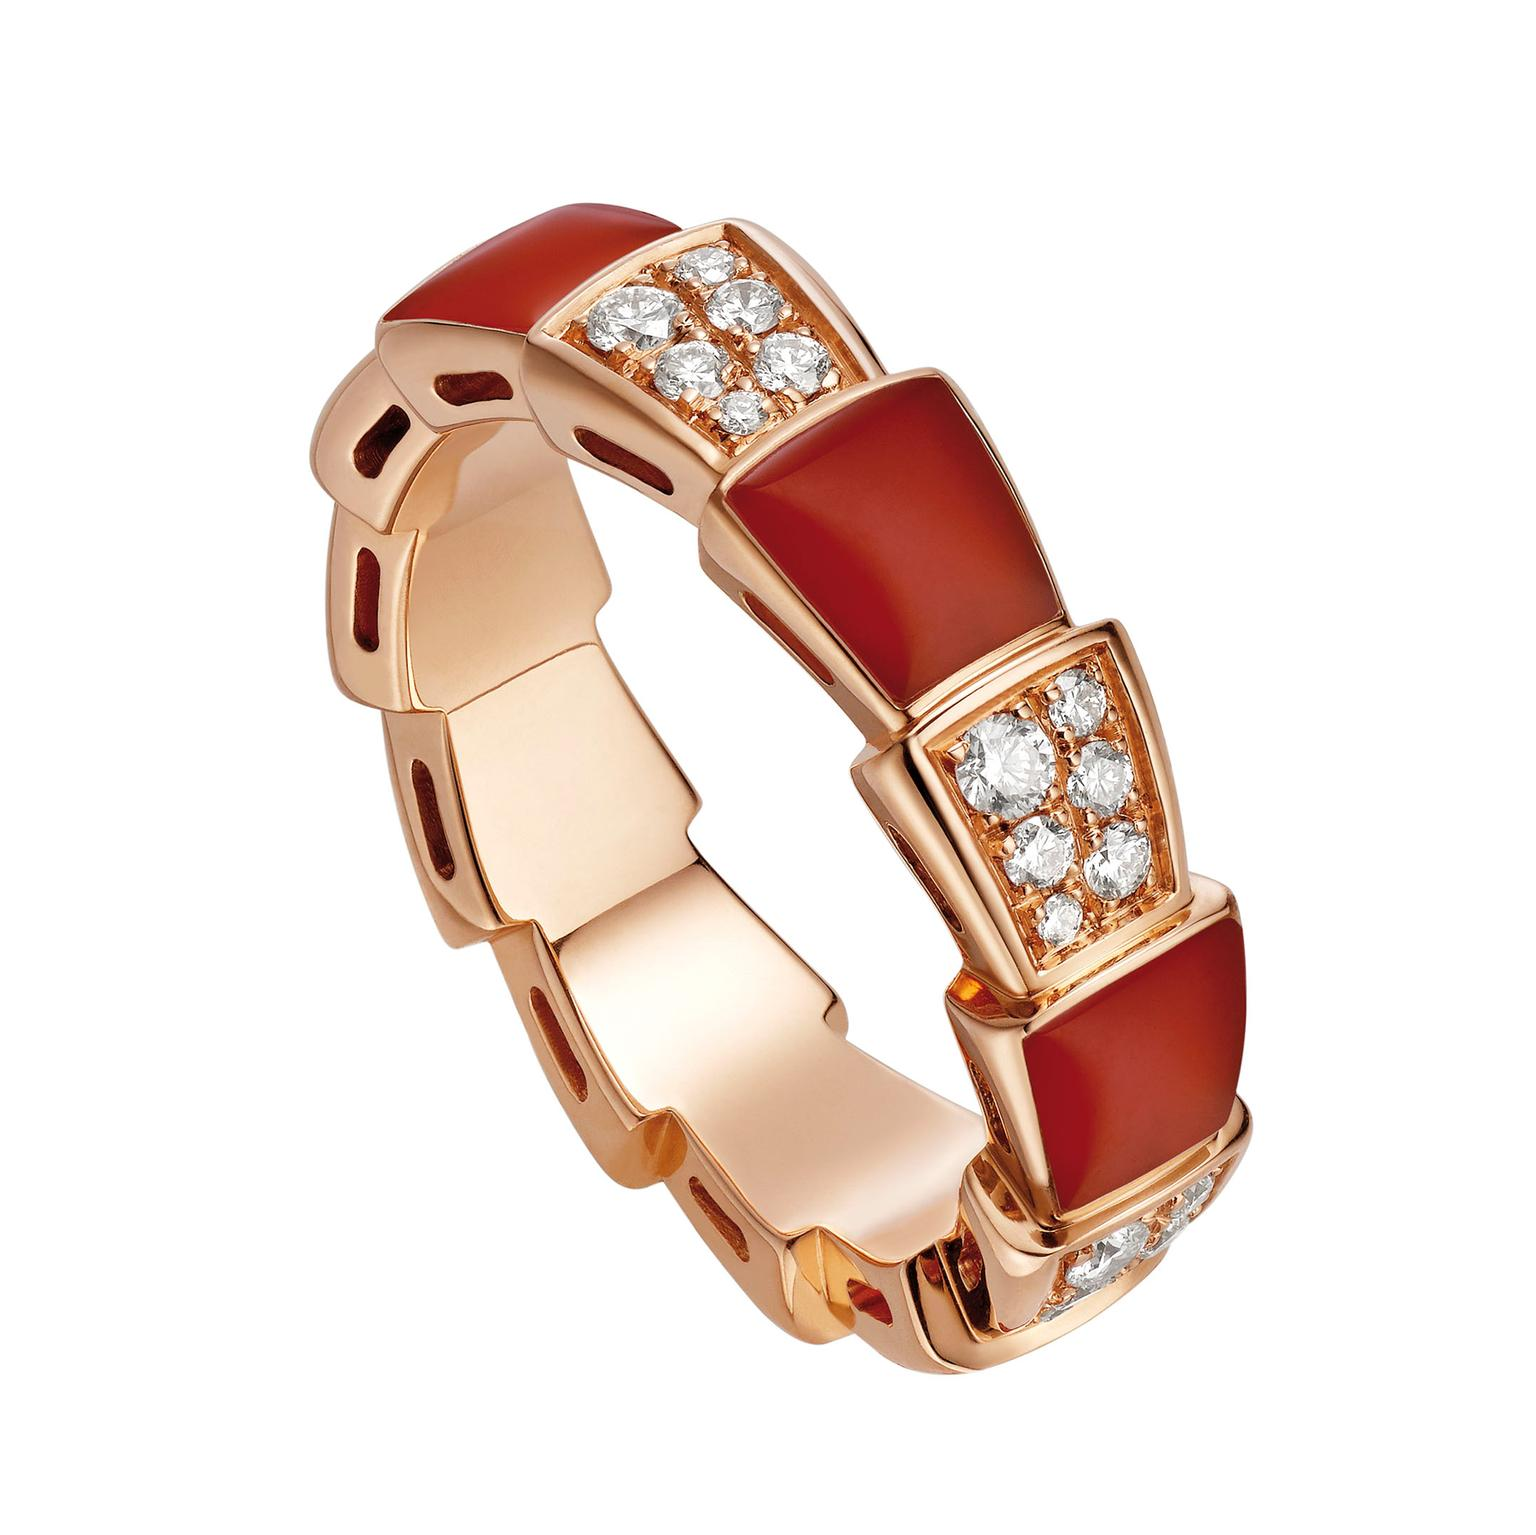 Bulgari Serpenti Viper carnelian ring